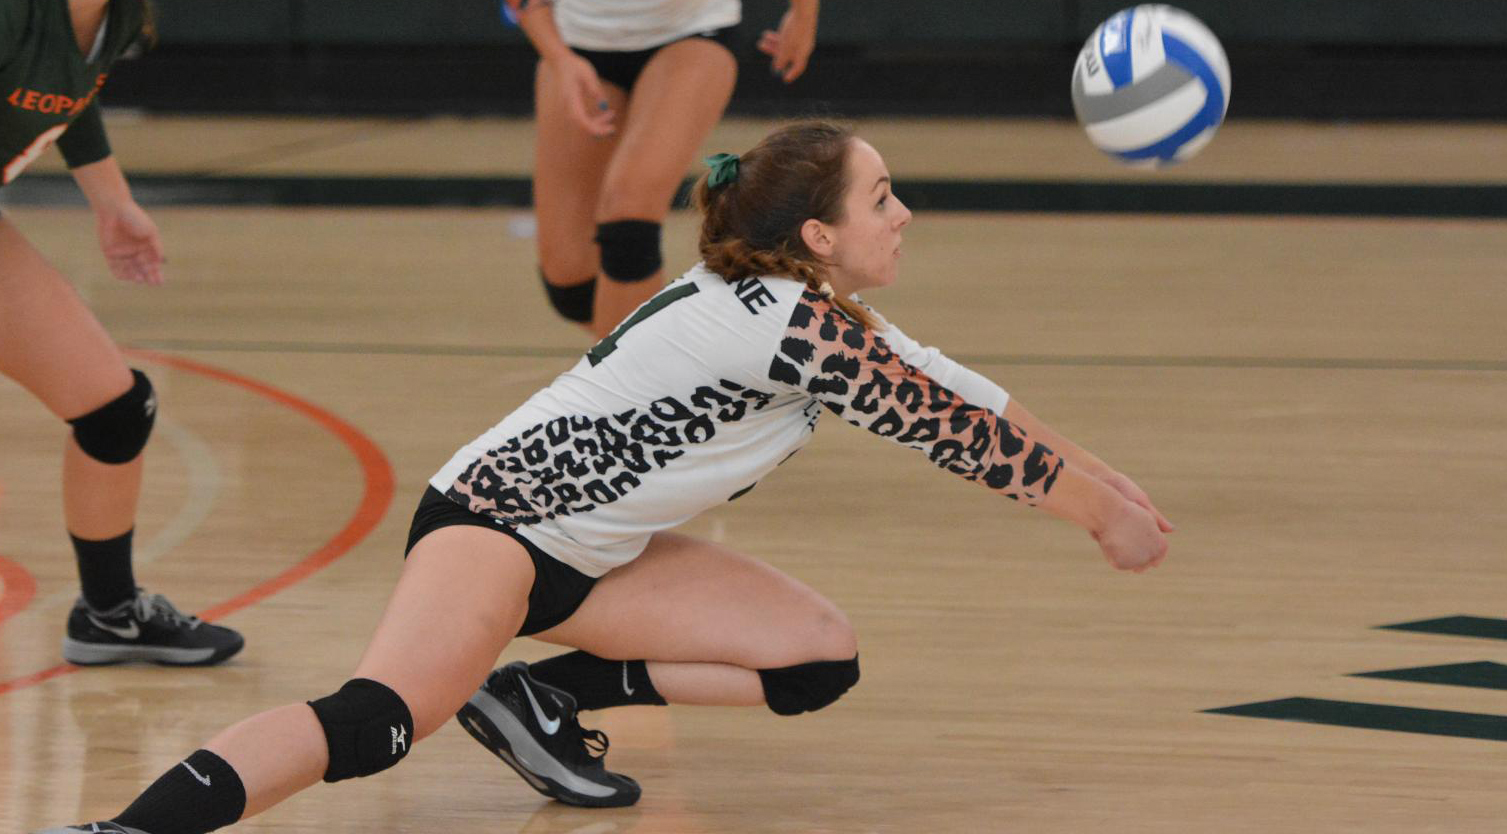 Volleyball falls at Chapman, 3-2